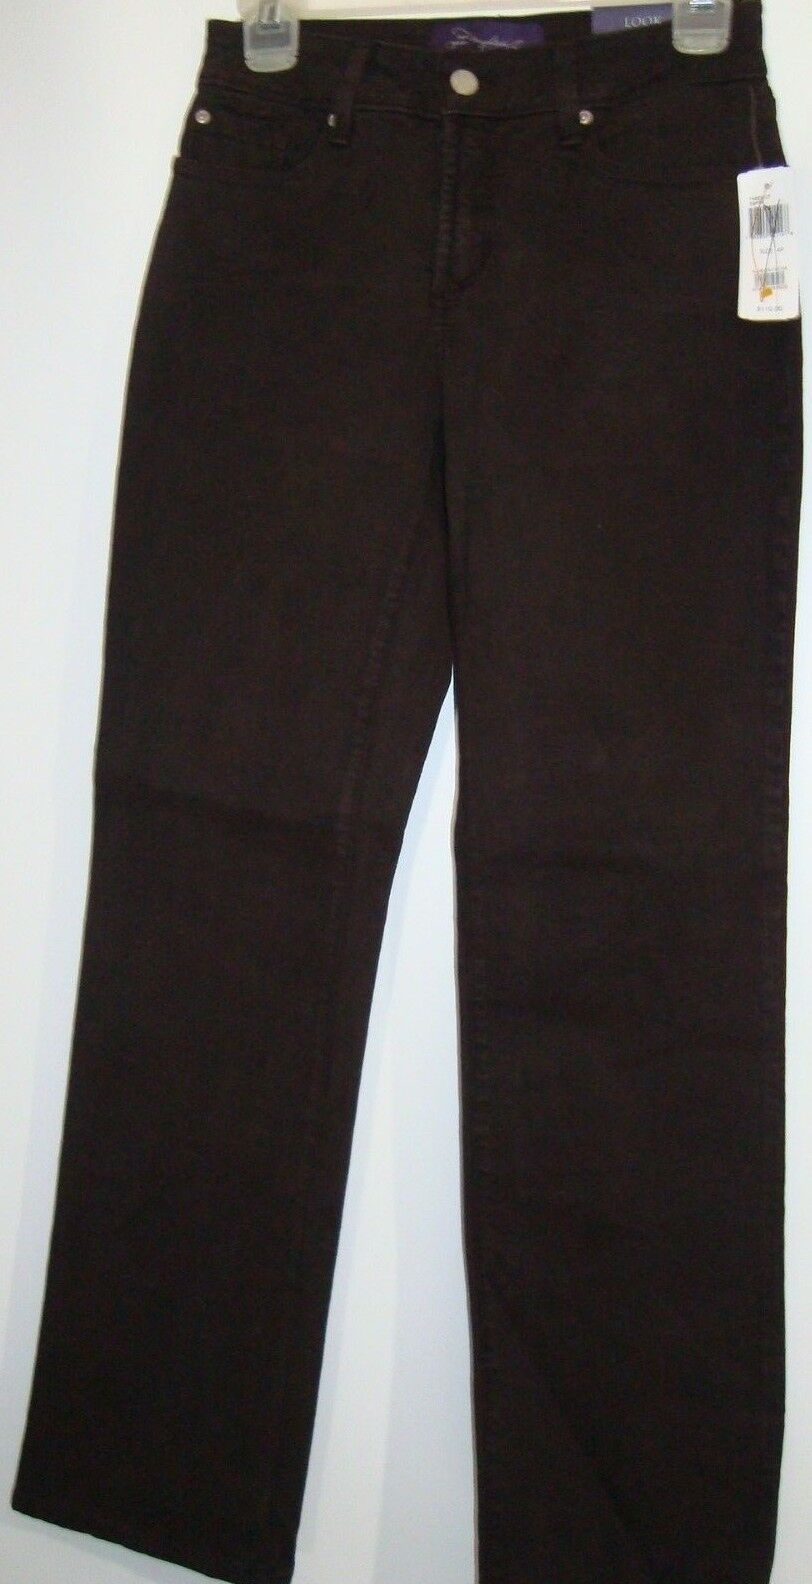 NYDJ WOMEN'S JEANS-SIZE 4P-BROWN COLOR-COTTON BLEND-FREE SHIPPING-BRAND NEW